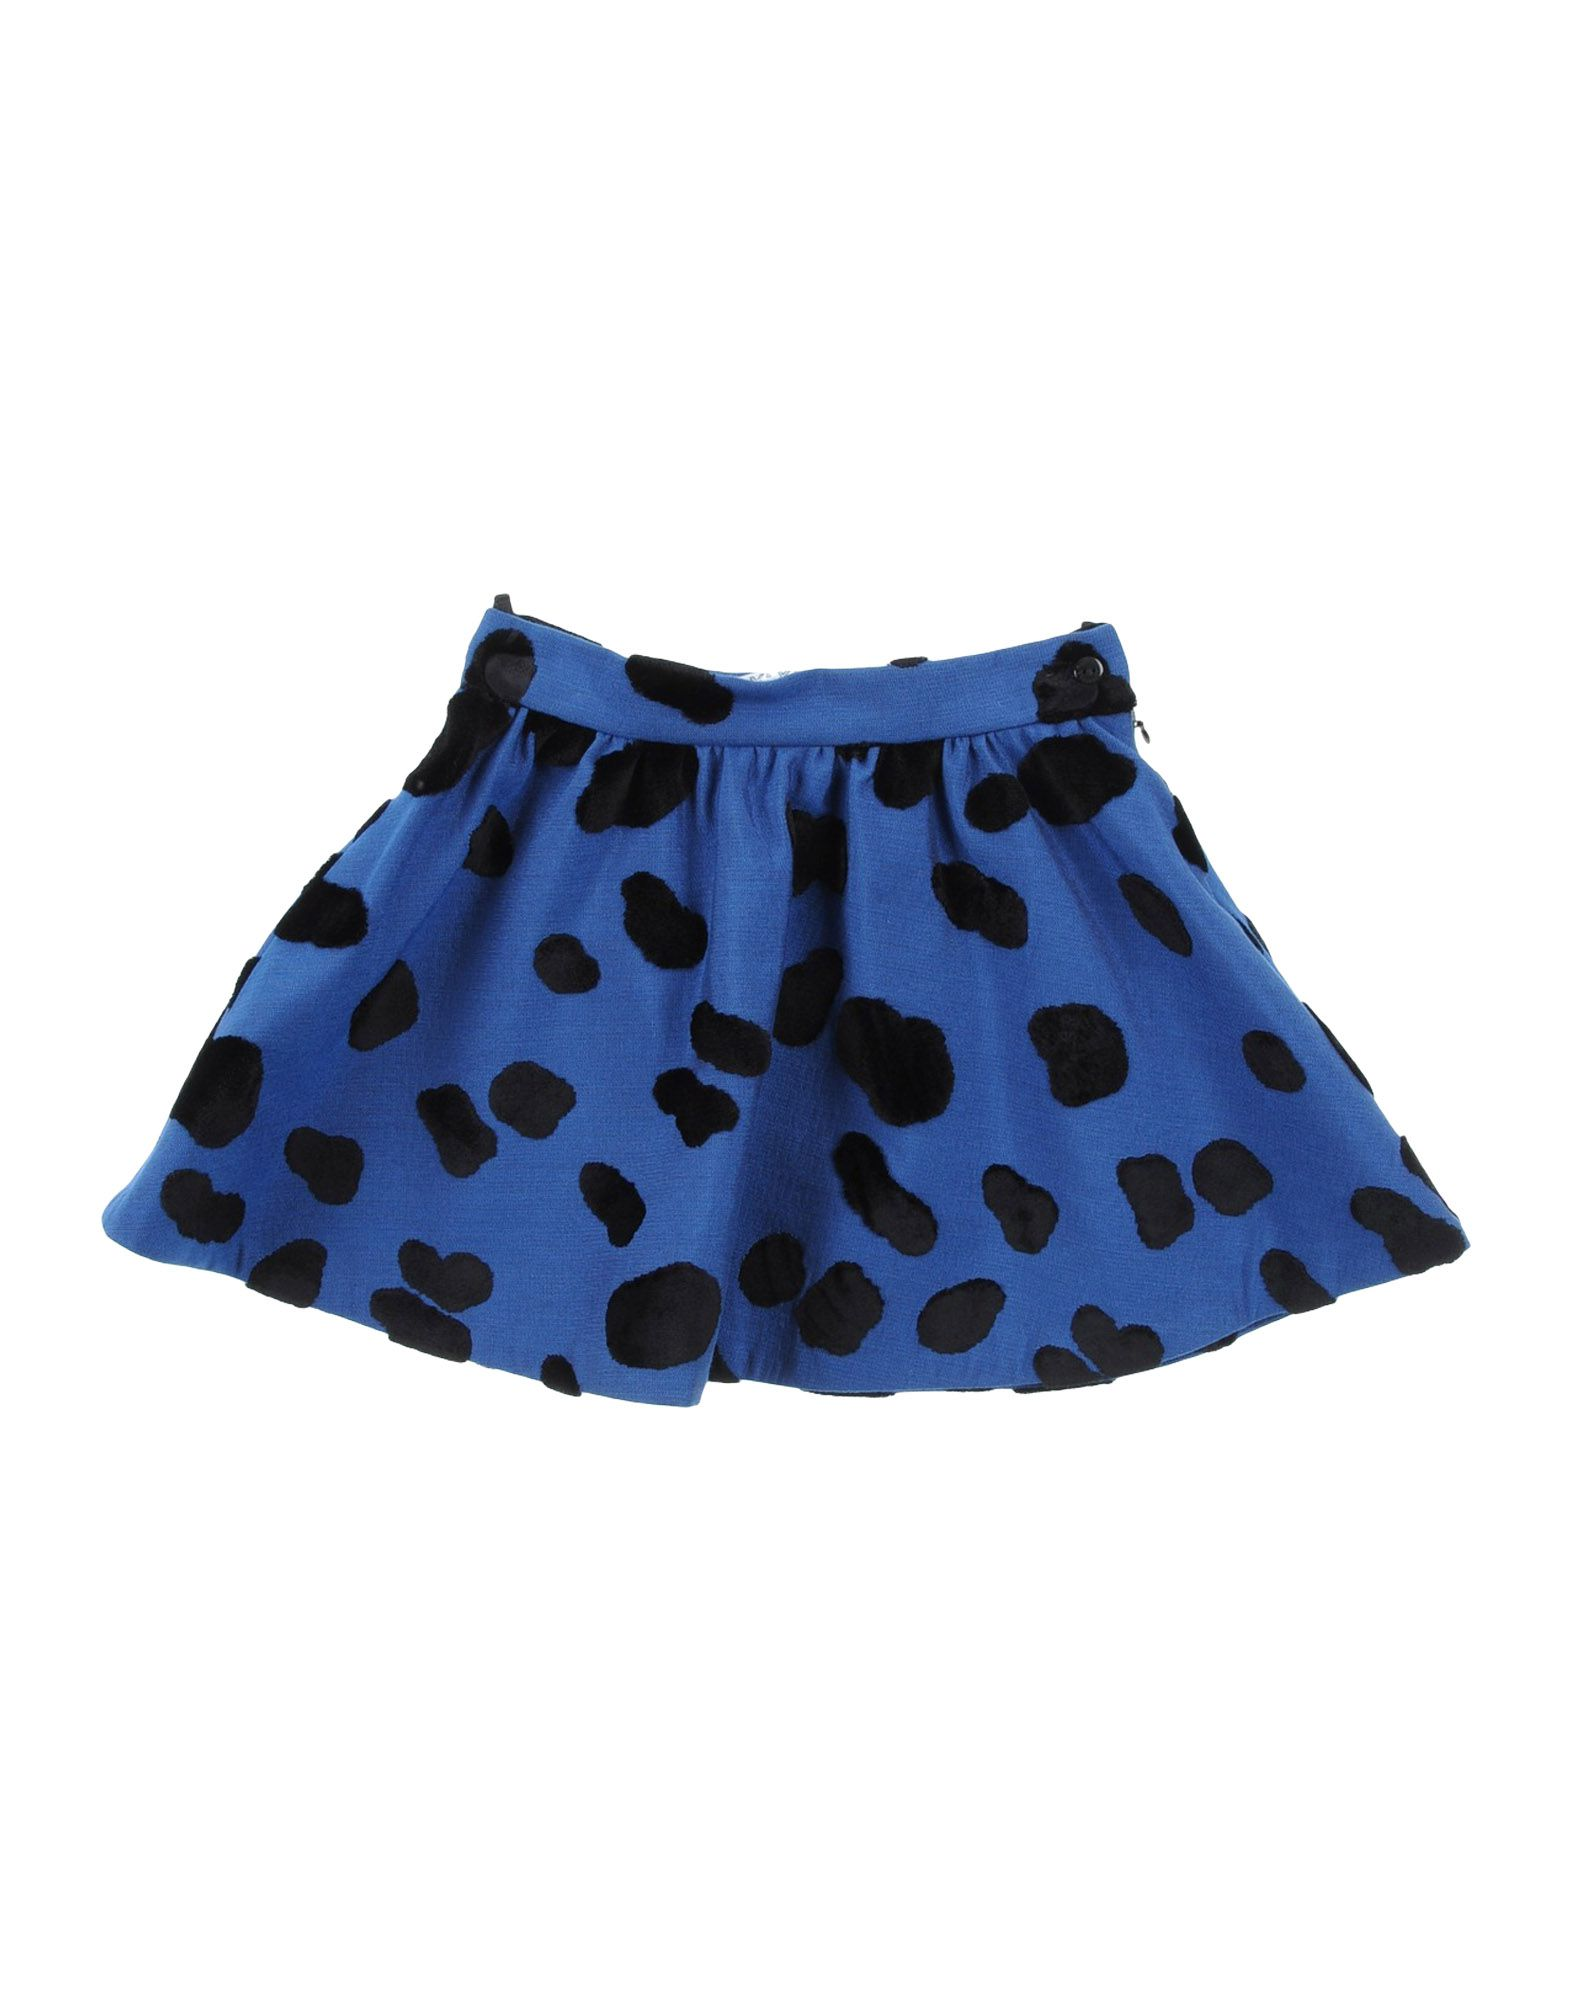 SALE - 30% and more off on Skirts